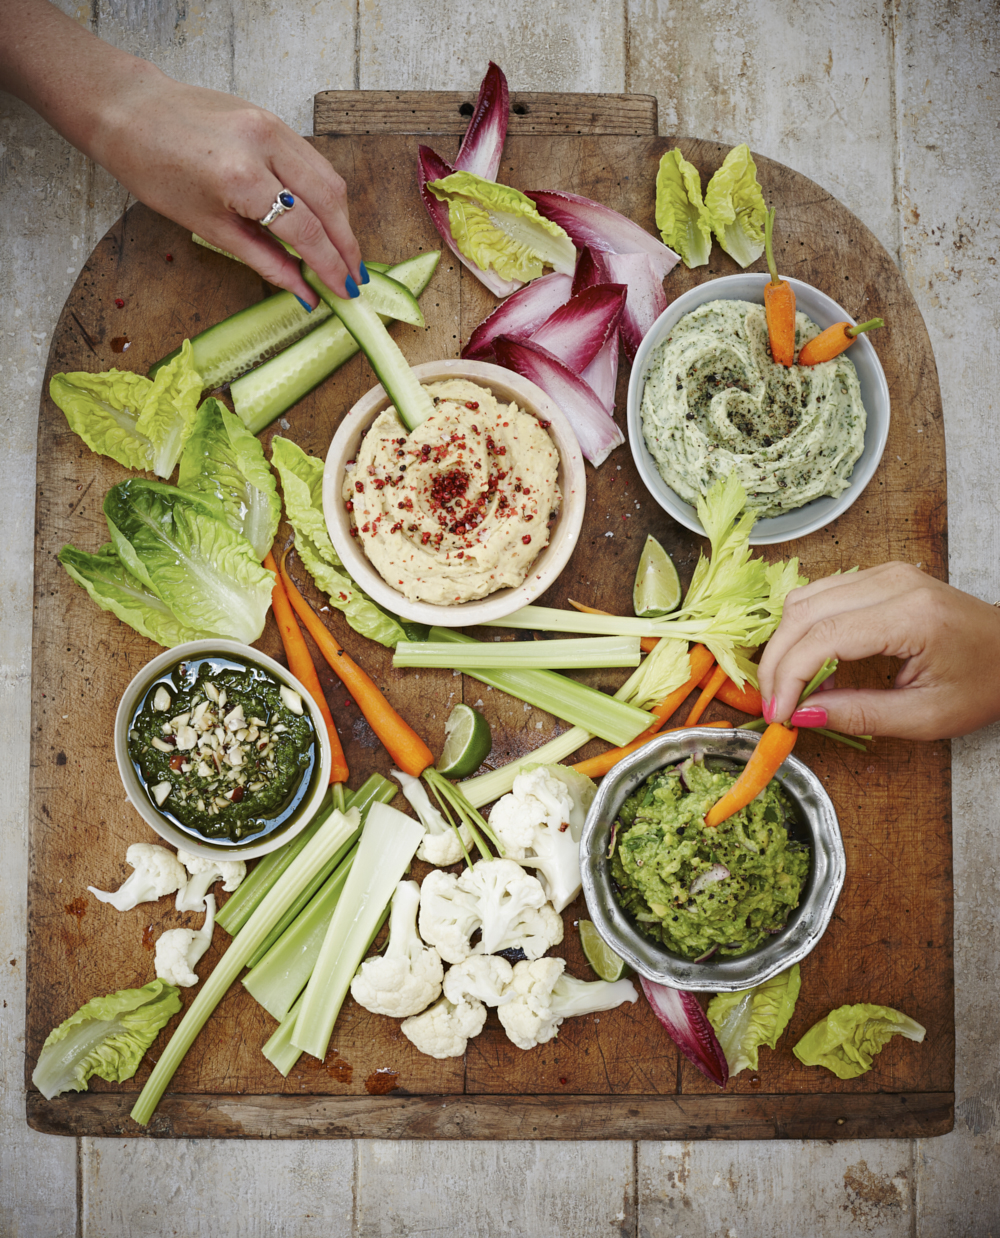 Hands reaching in to eat various dips. Food photography by London based photographer Joanna Henderson